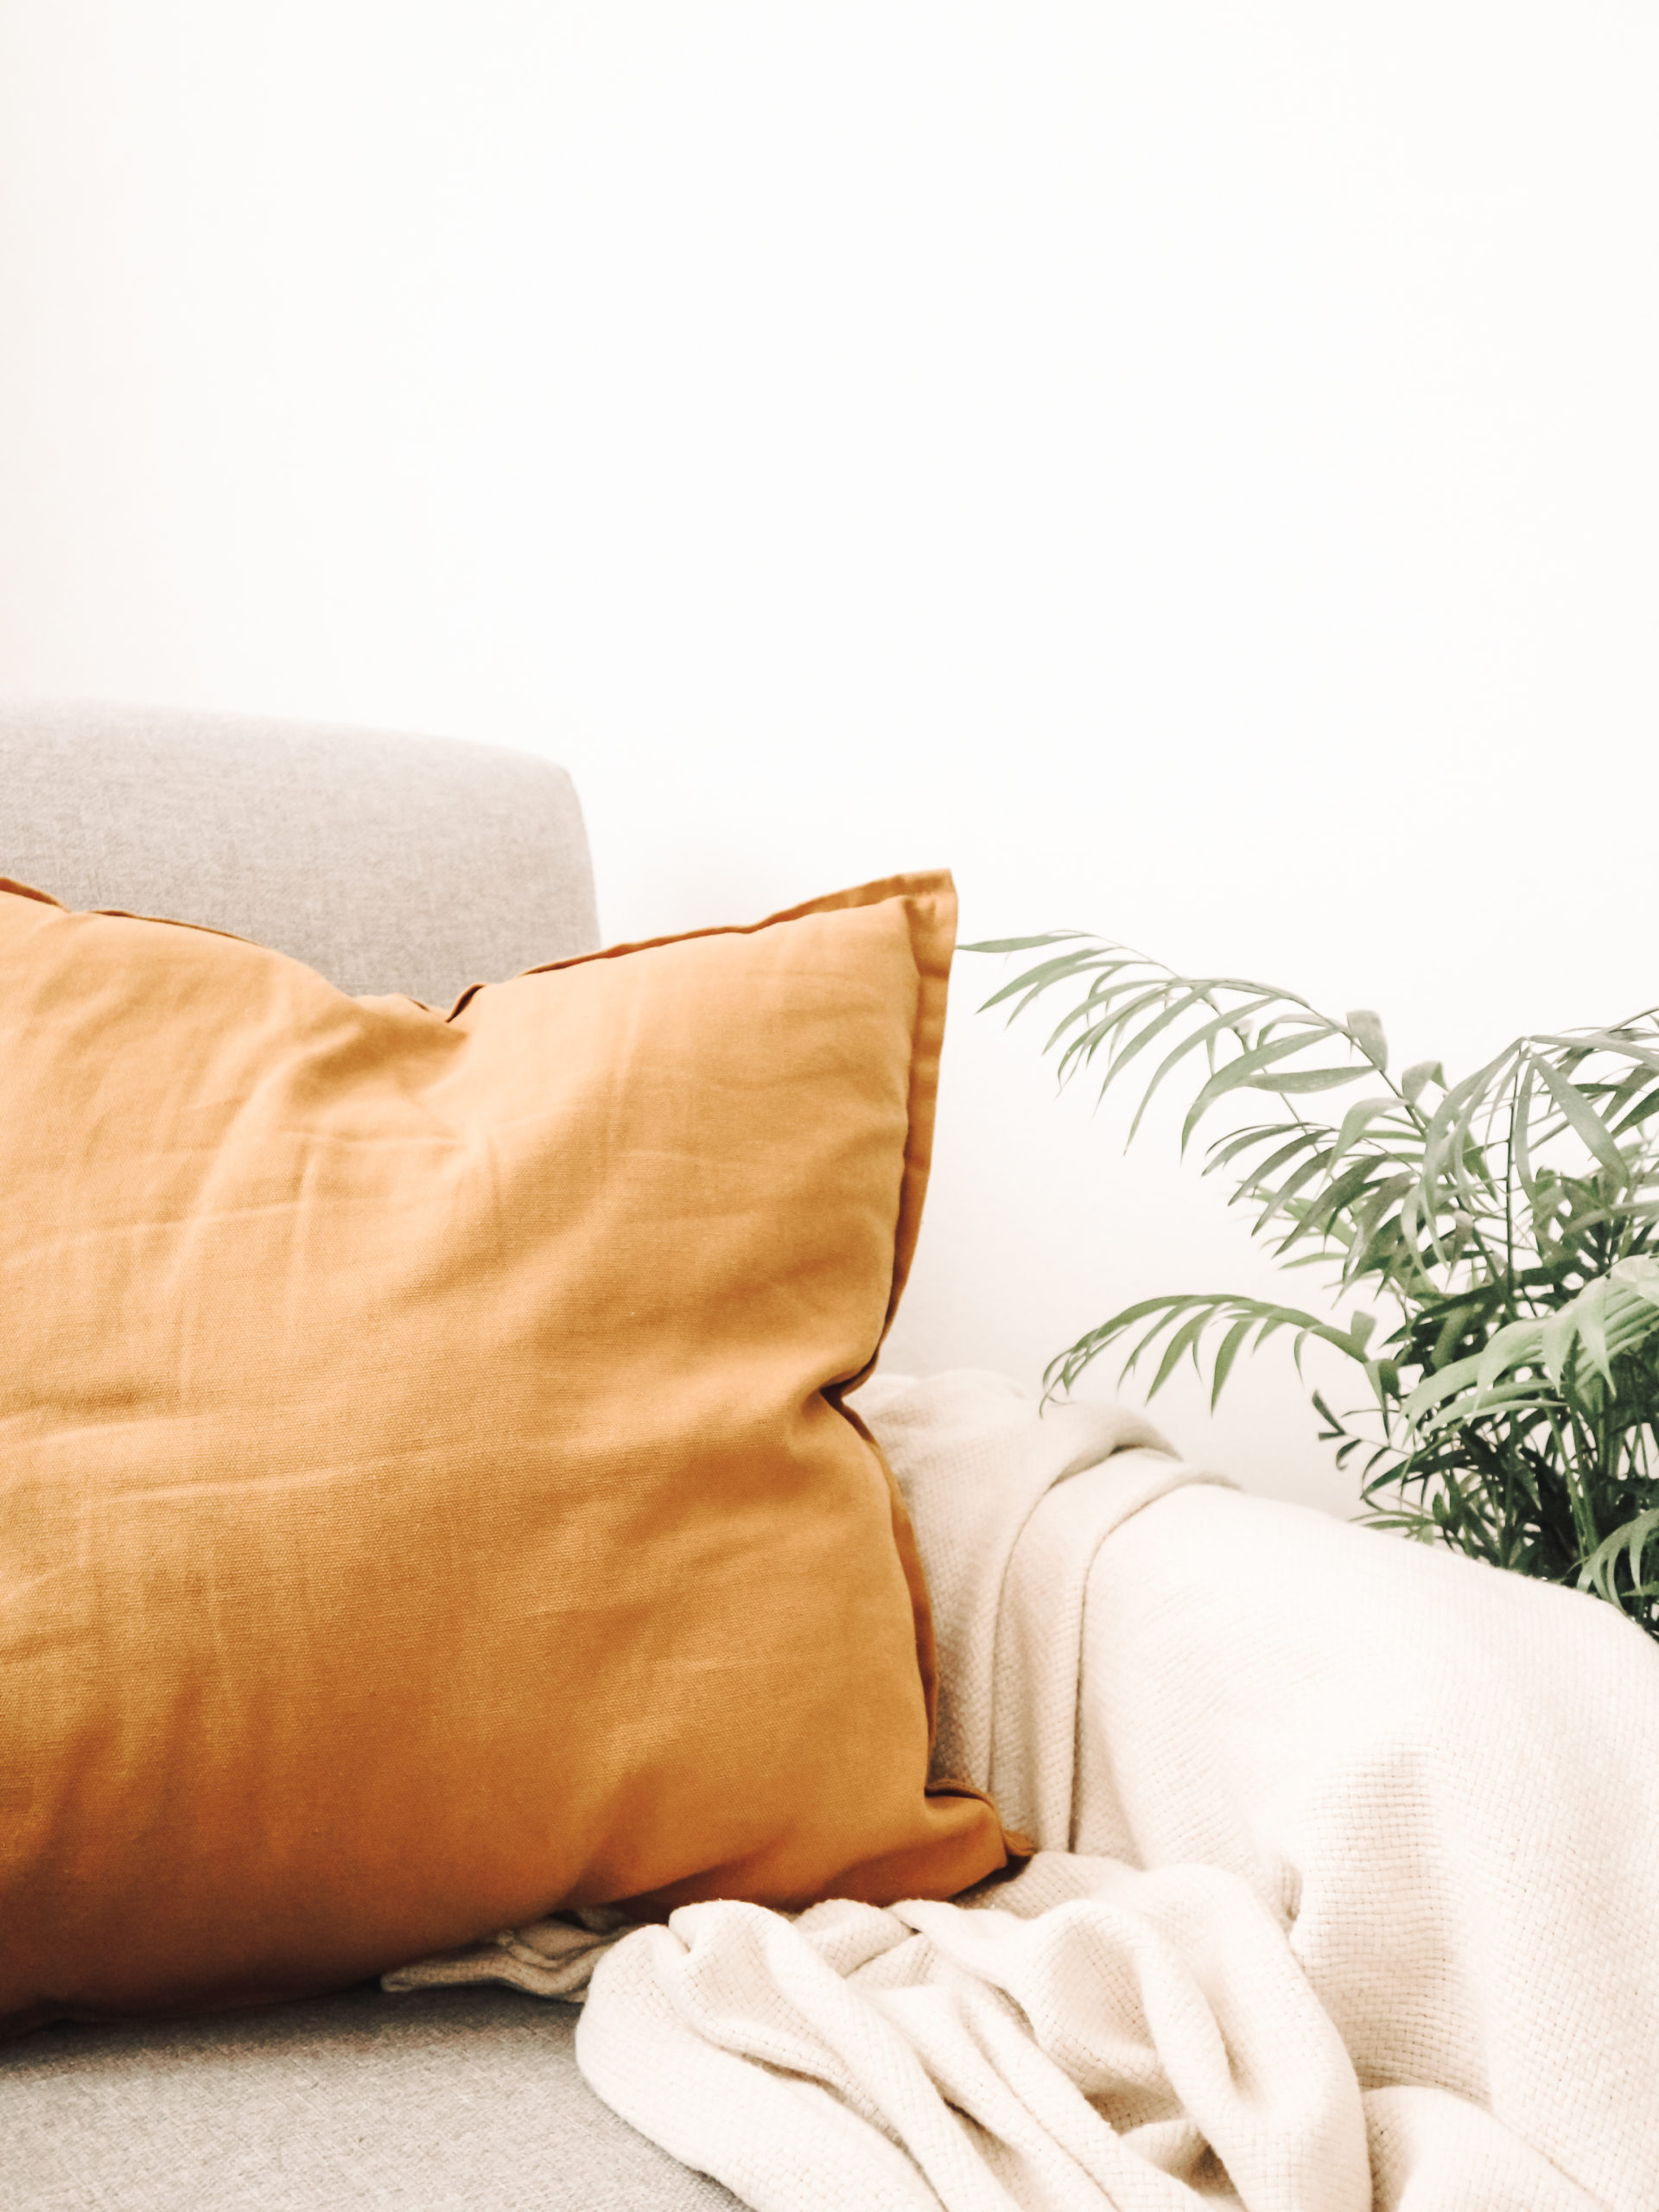 Grey armchair with mustard coloured cushion and a plant.